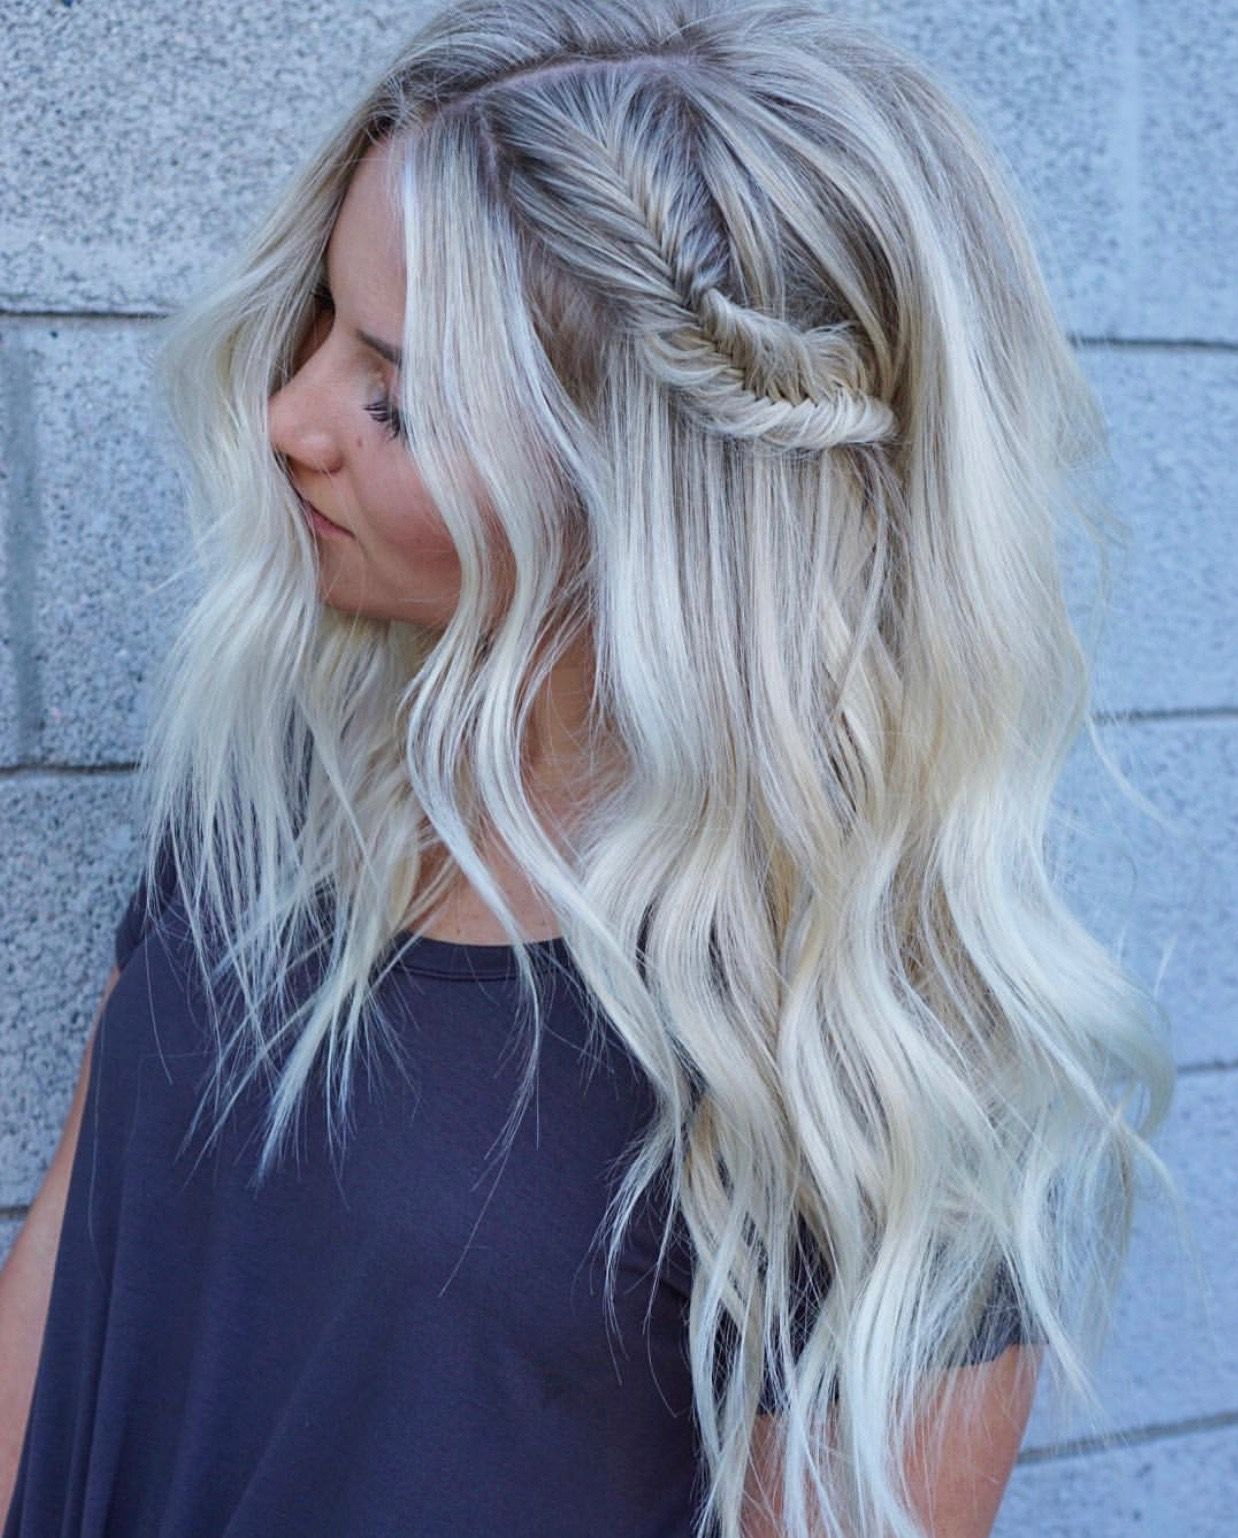 Fishtail braid leading into loose tousled beach waves on